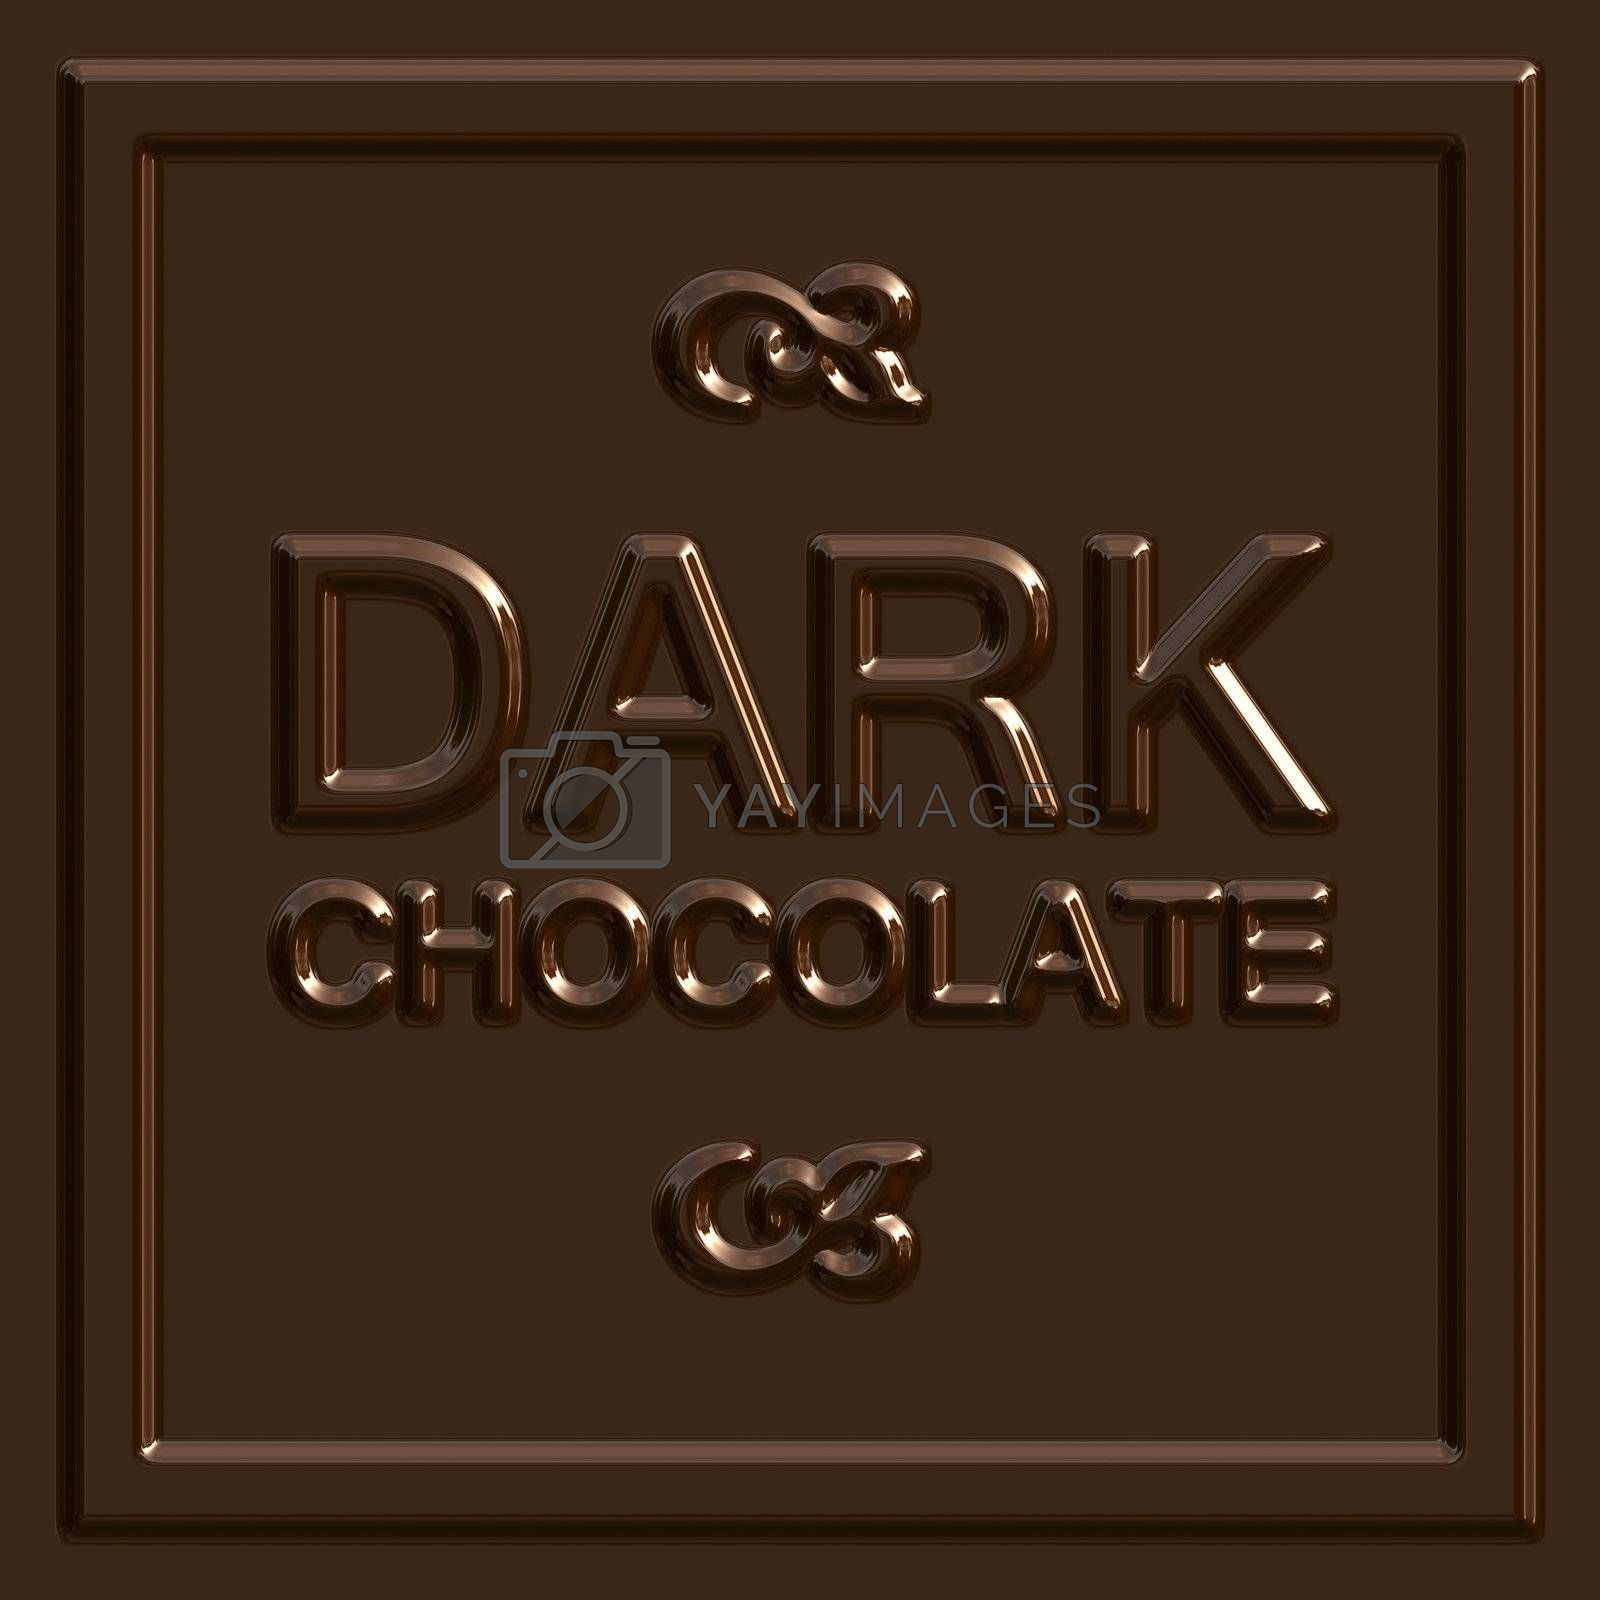 A dark chocolate square that tiles seamlessly as a pattern to make any background or isolated chocolate bar shape that you need.